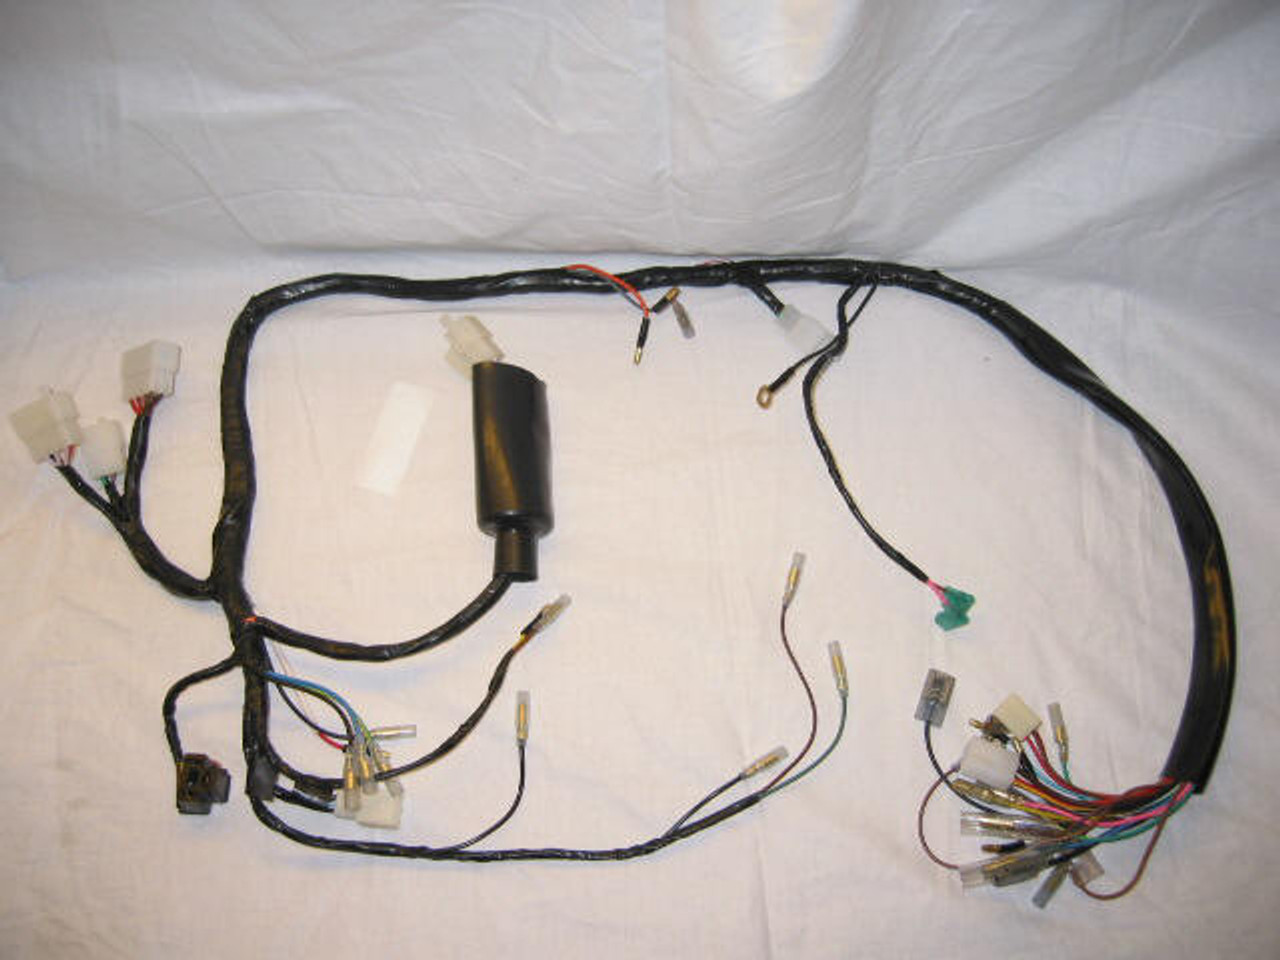 Astounding 1976 1979 Rd250 Rd400 Wire Harness Hvccycle Wiring Digital Resources Funapmognl